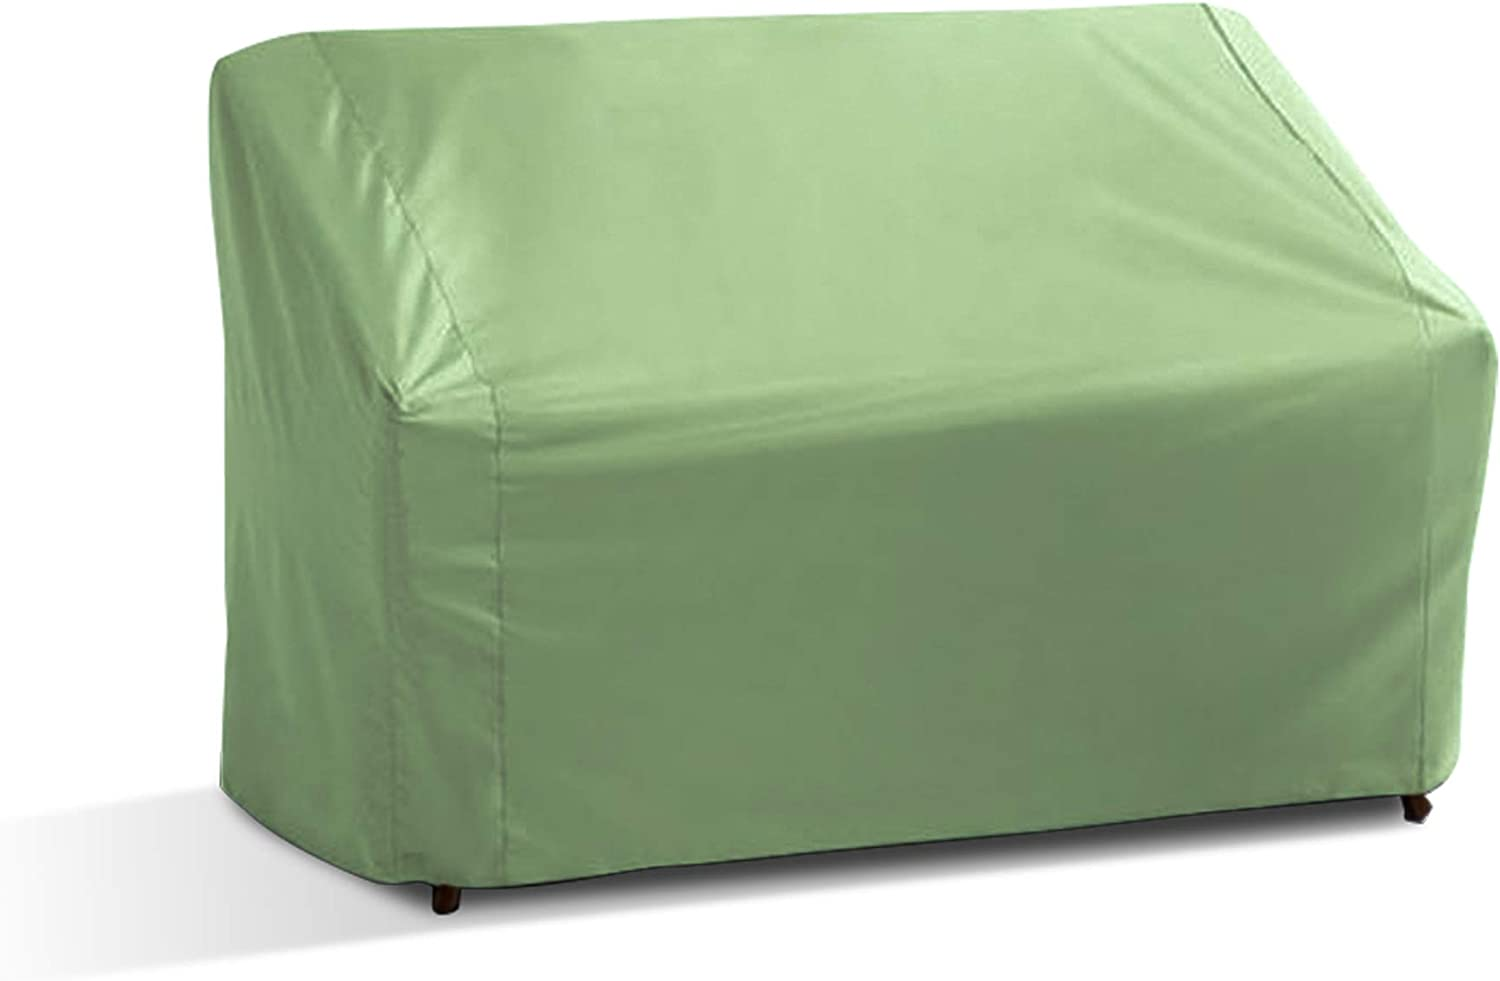 Patio Loveseat/Bench Covers with Adjustable Peel and Fit Fastener Straps Covers Furniture up to 60